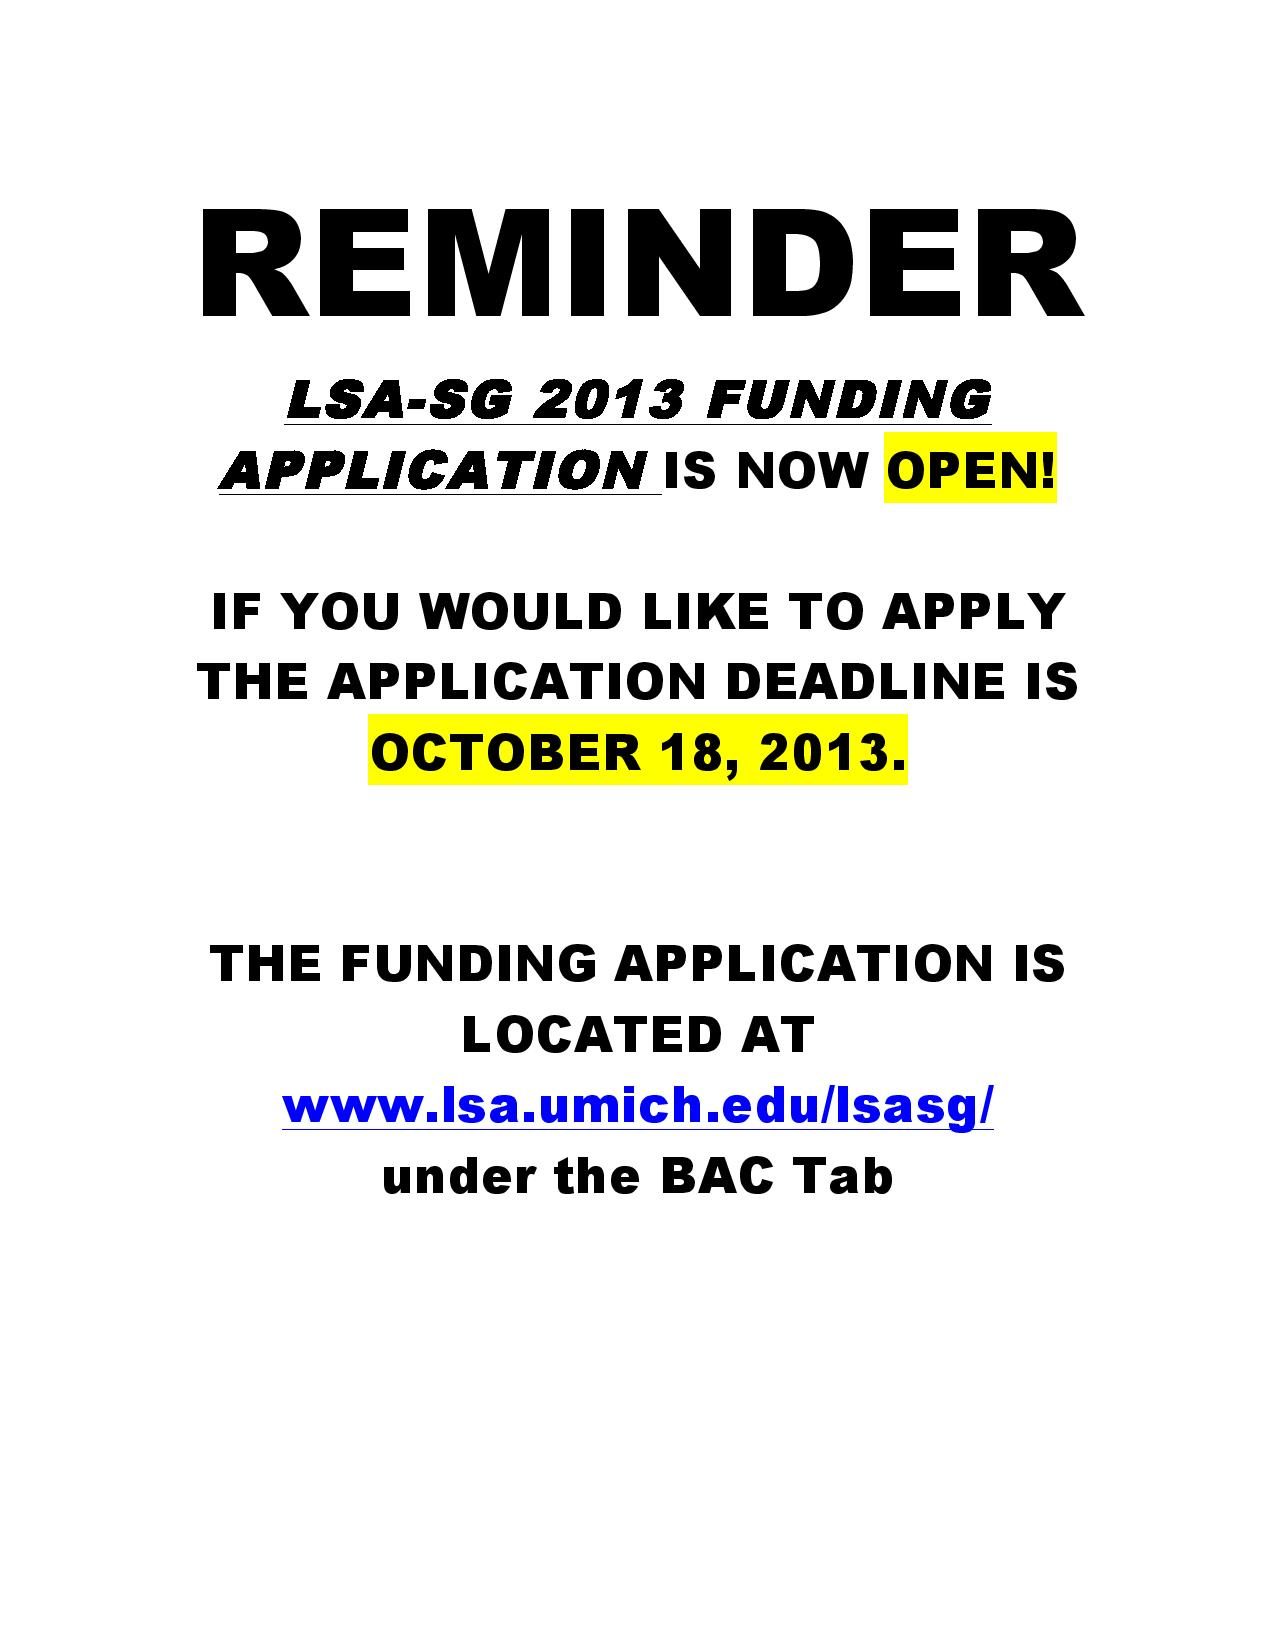 LSA-Student Government Funding Application is now OPEN